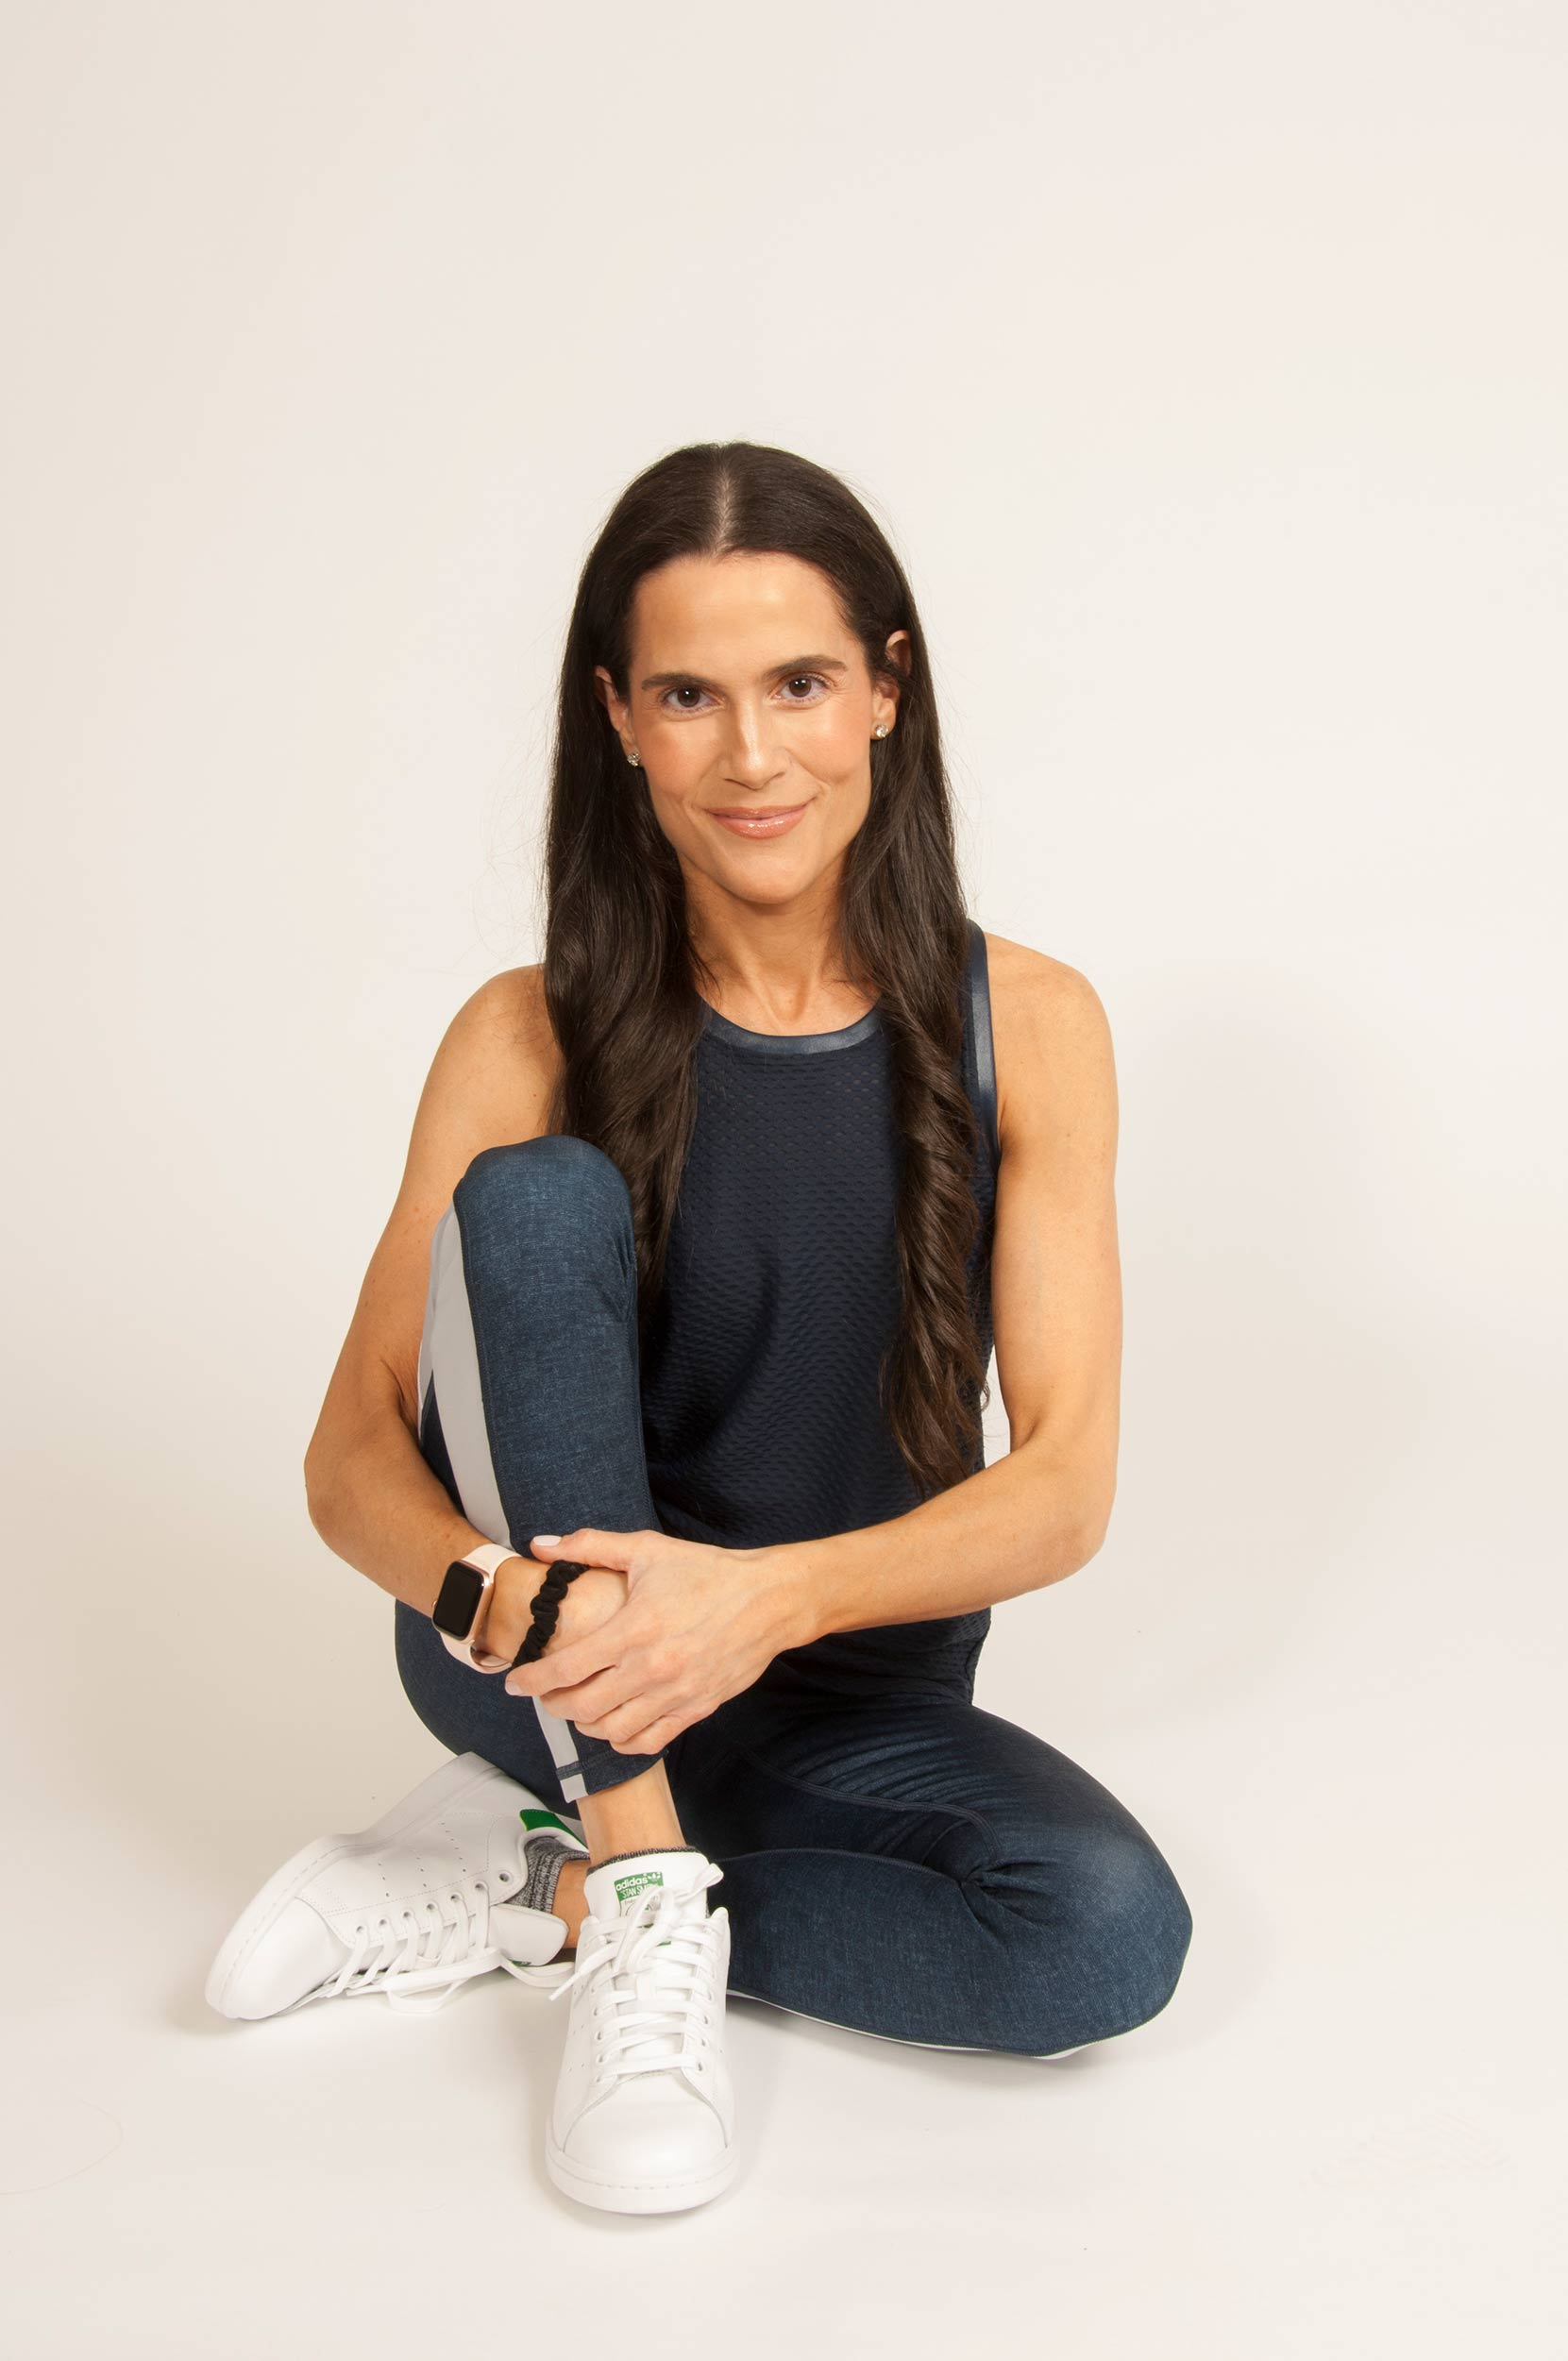 Dr. Alison Mitzner in a navy blue workout outfit and white tennis shoes, fitness guru, mom expert, postpartum wellness tips